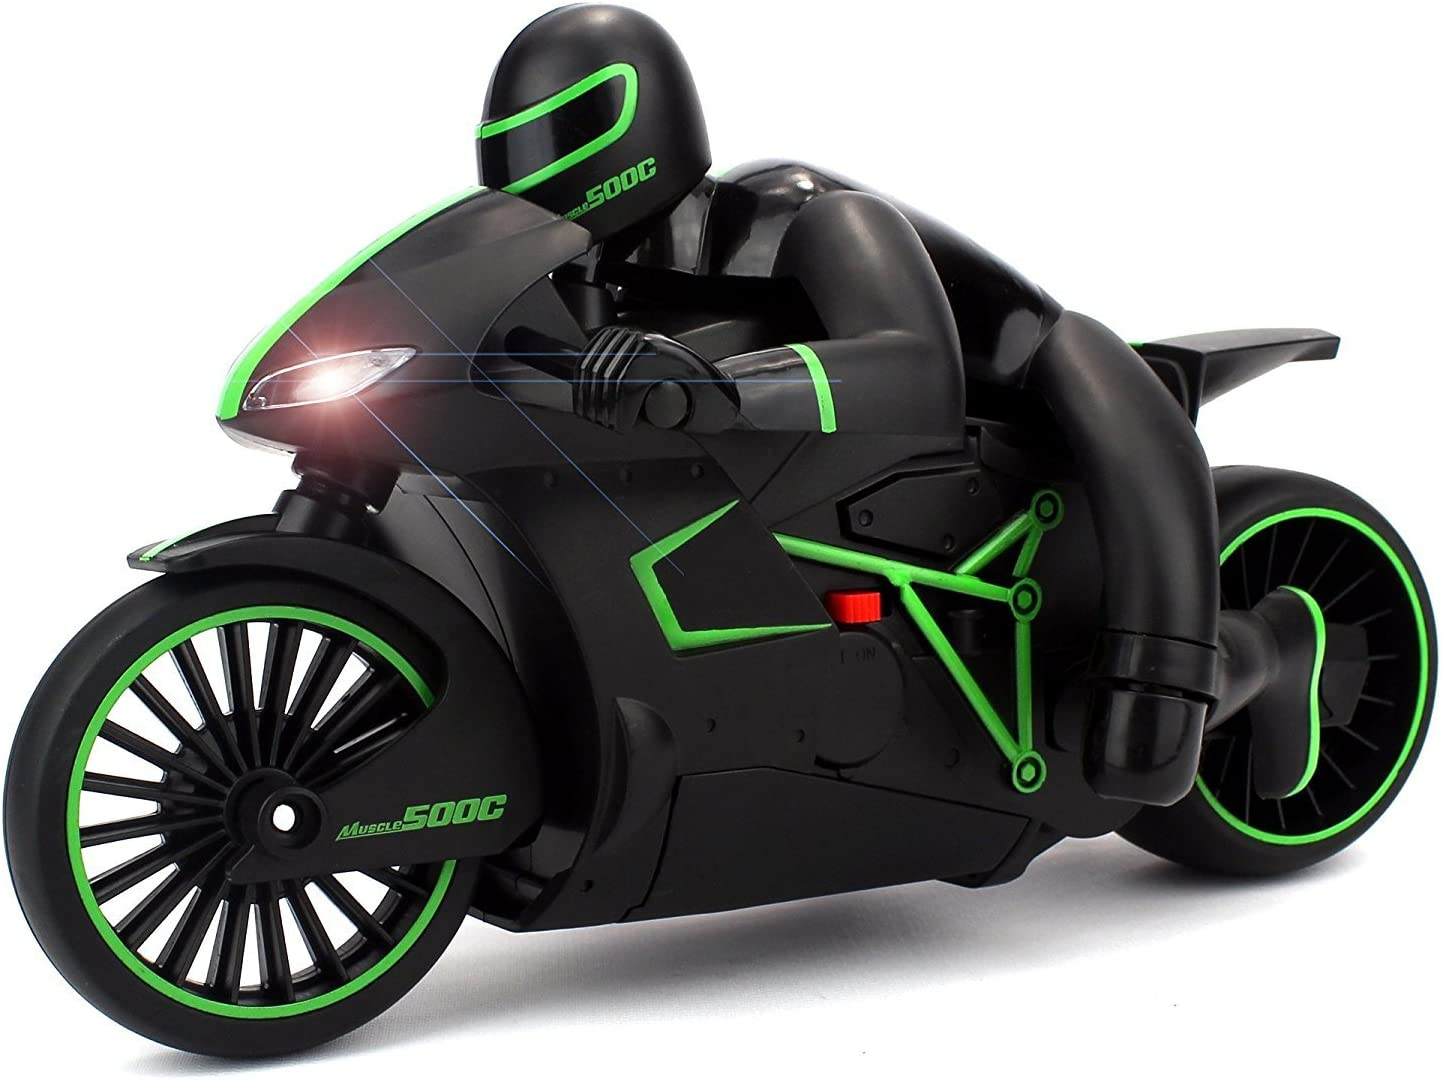 Top 10 Best Remote Control Motorcycles (2020 Reviews & Buying Guide) 2